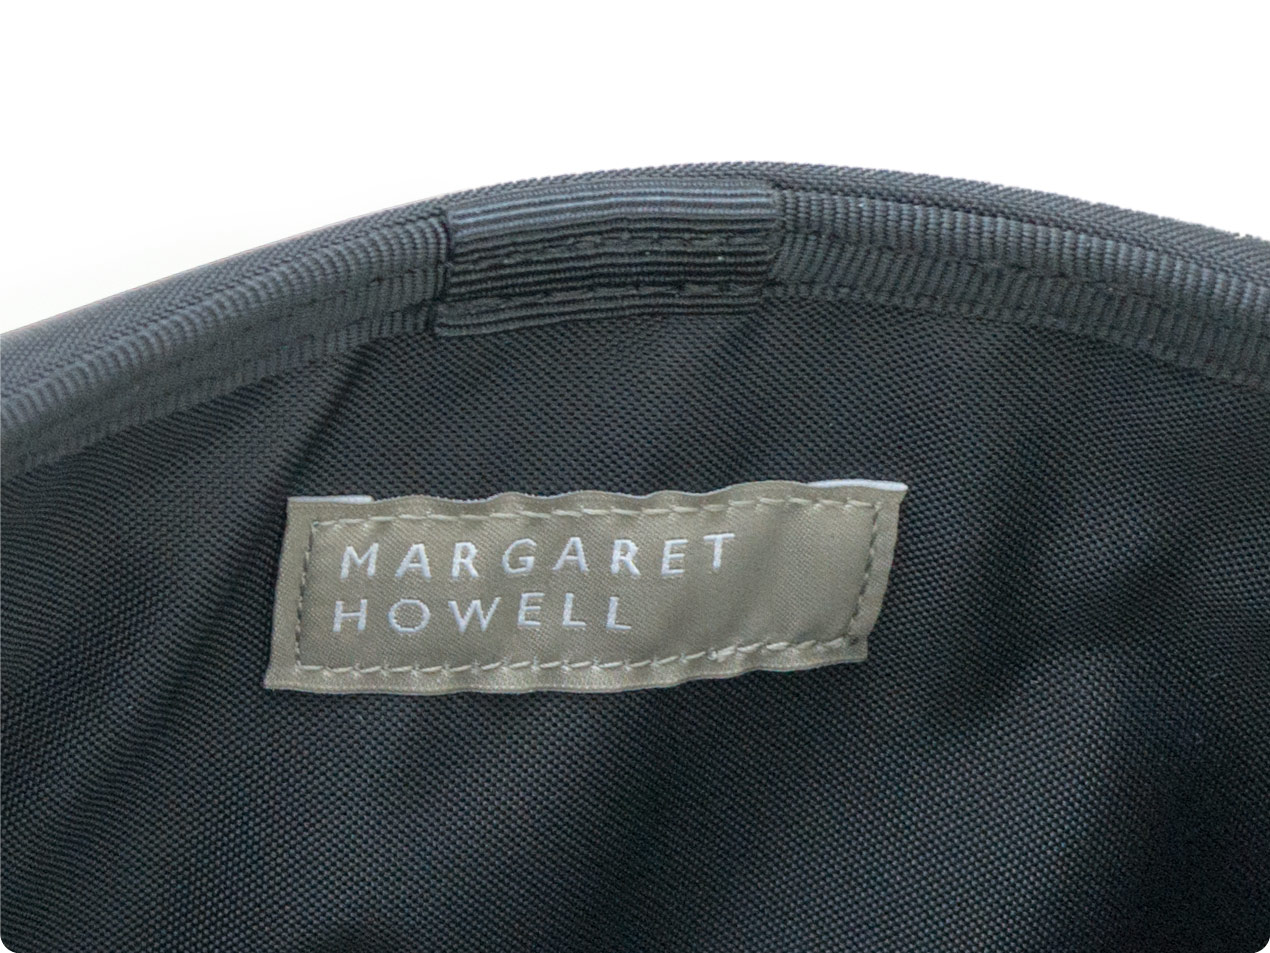 MARGARET HOWELL x PORTER CORDURA CANVAS POUCH